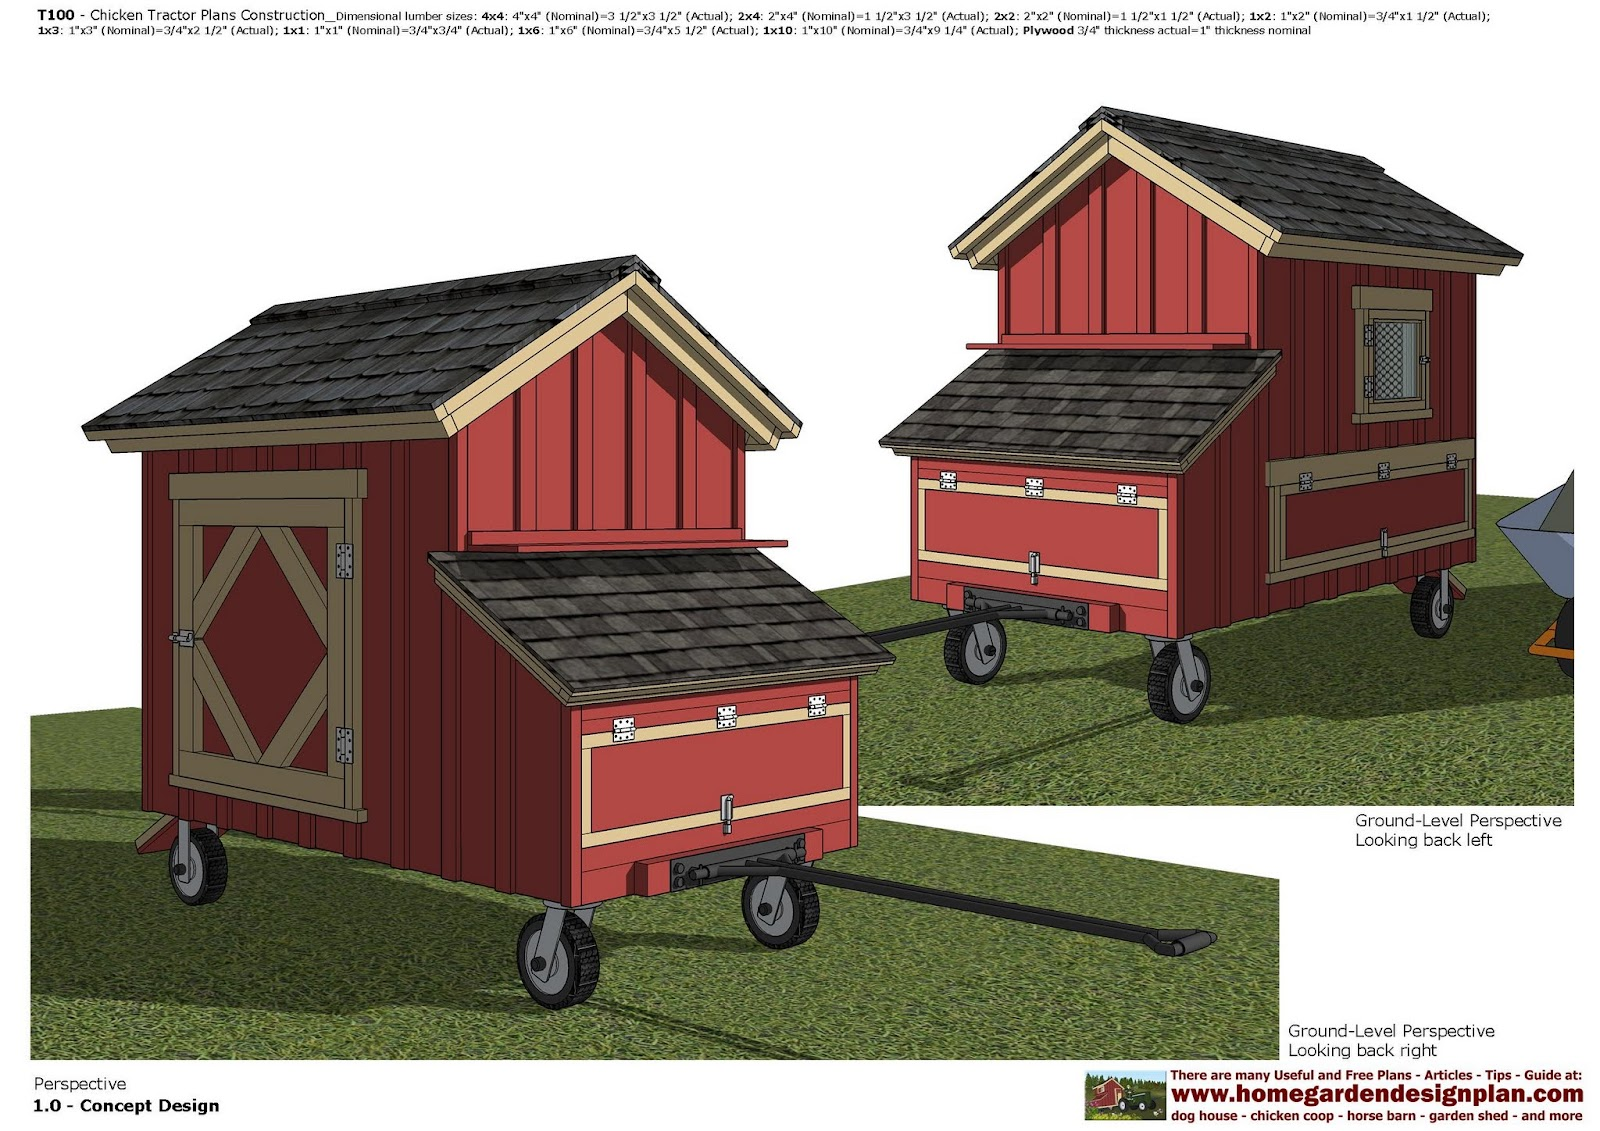 Home garden plans t100 chicken tractor plans chicken for Poultry house plans for 100 chickens